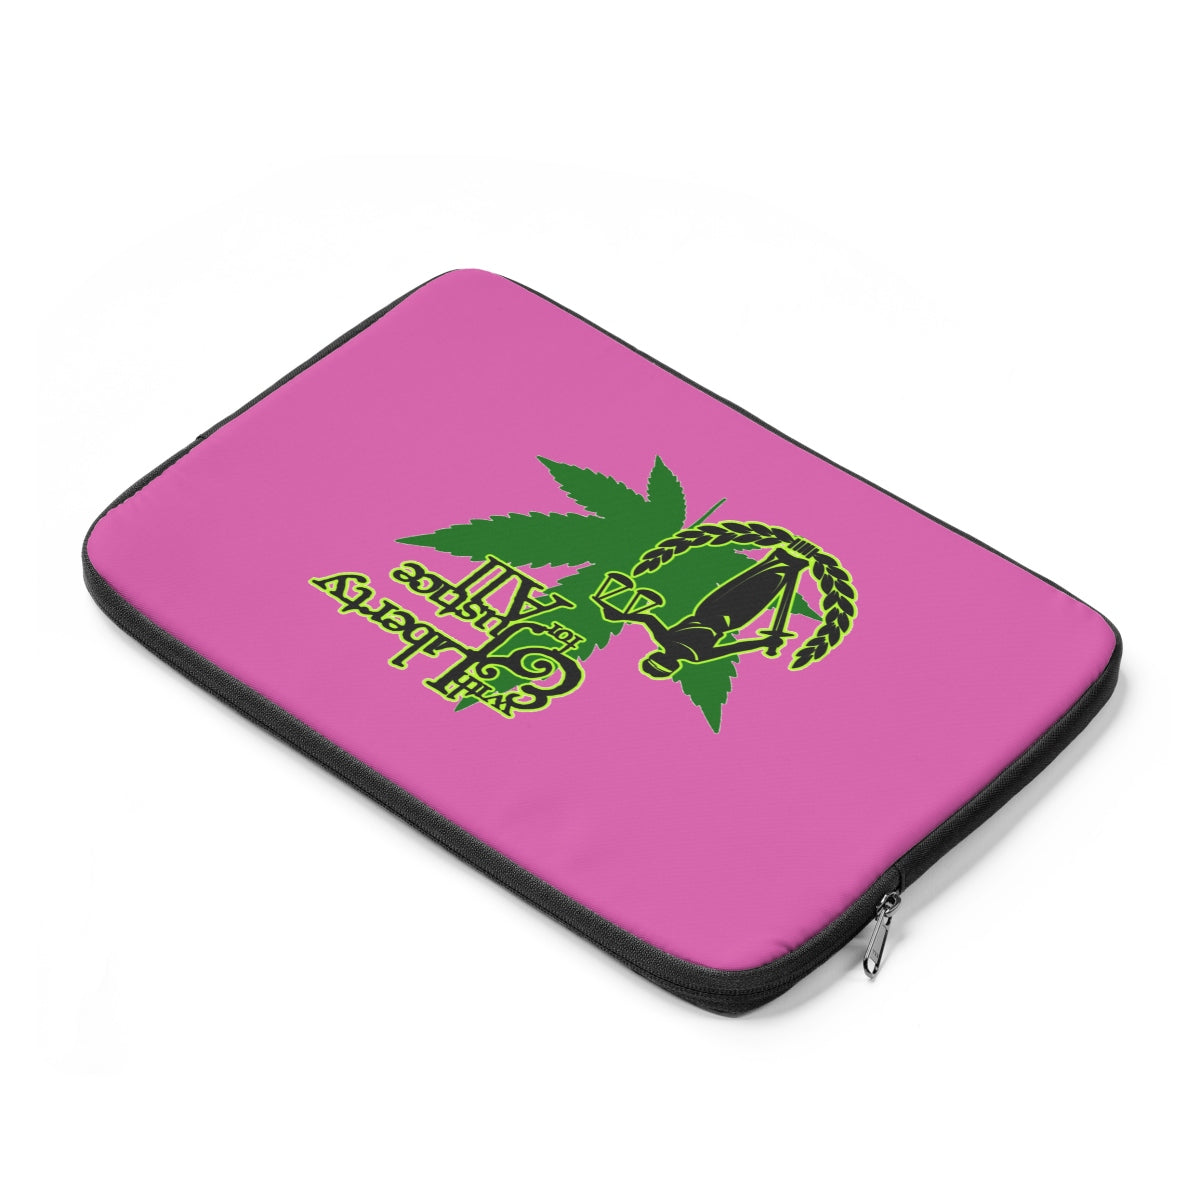 Liberty & Justice Laptop Sleeve, Raspberry